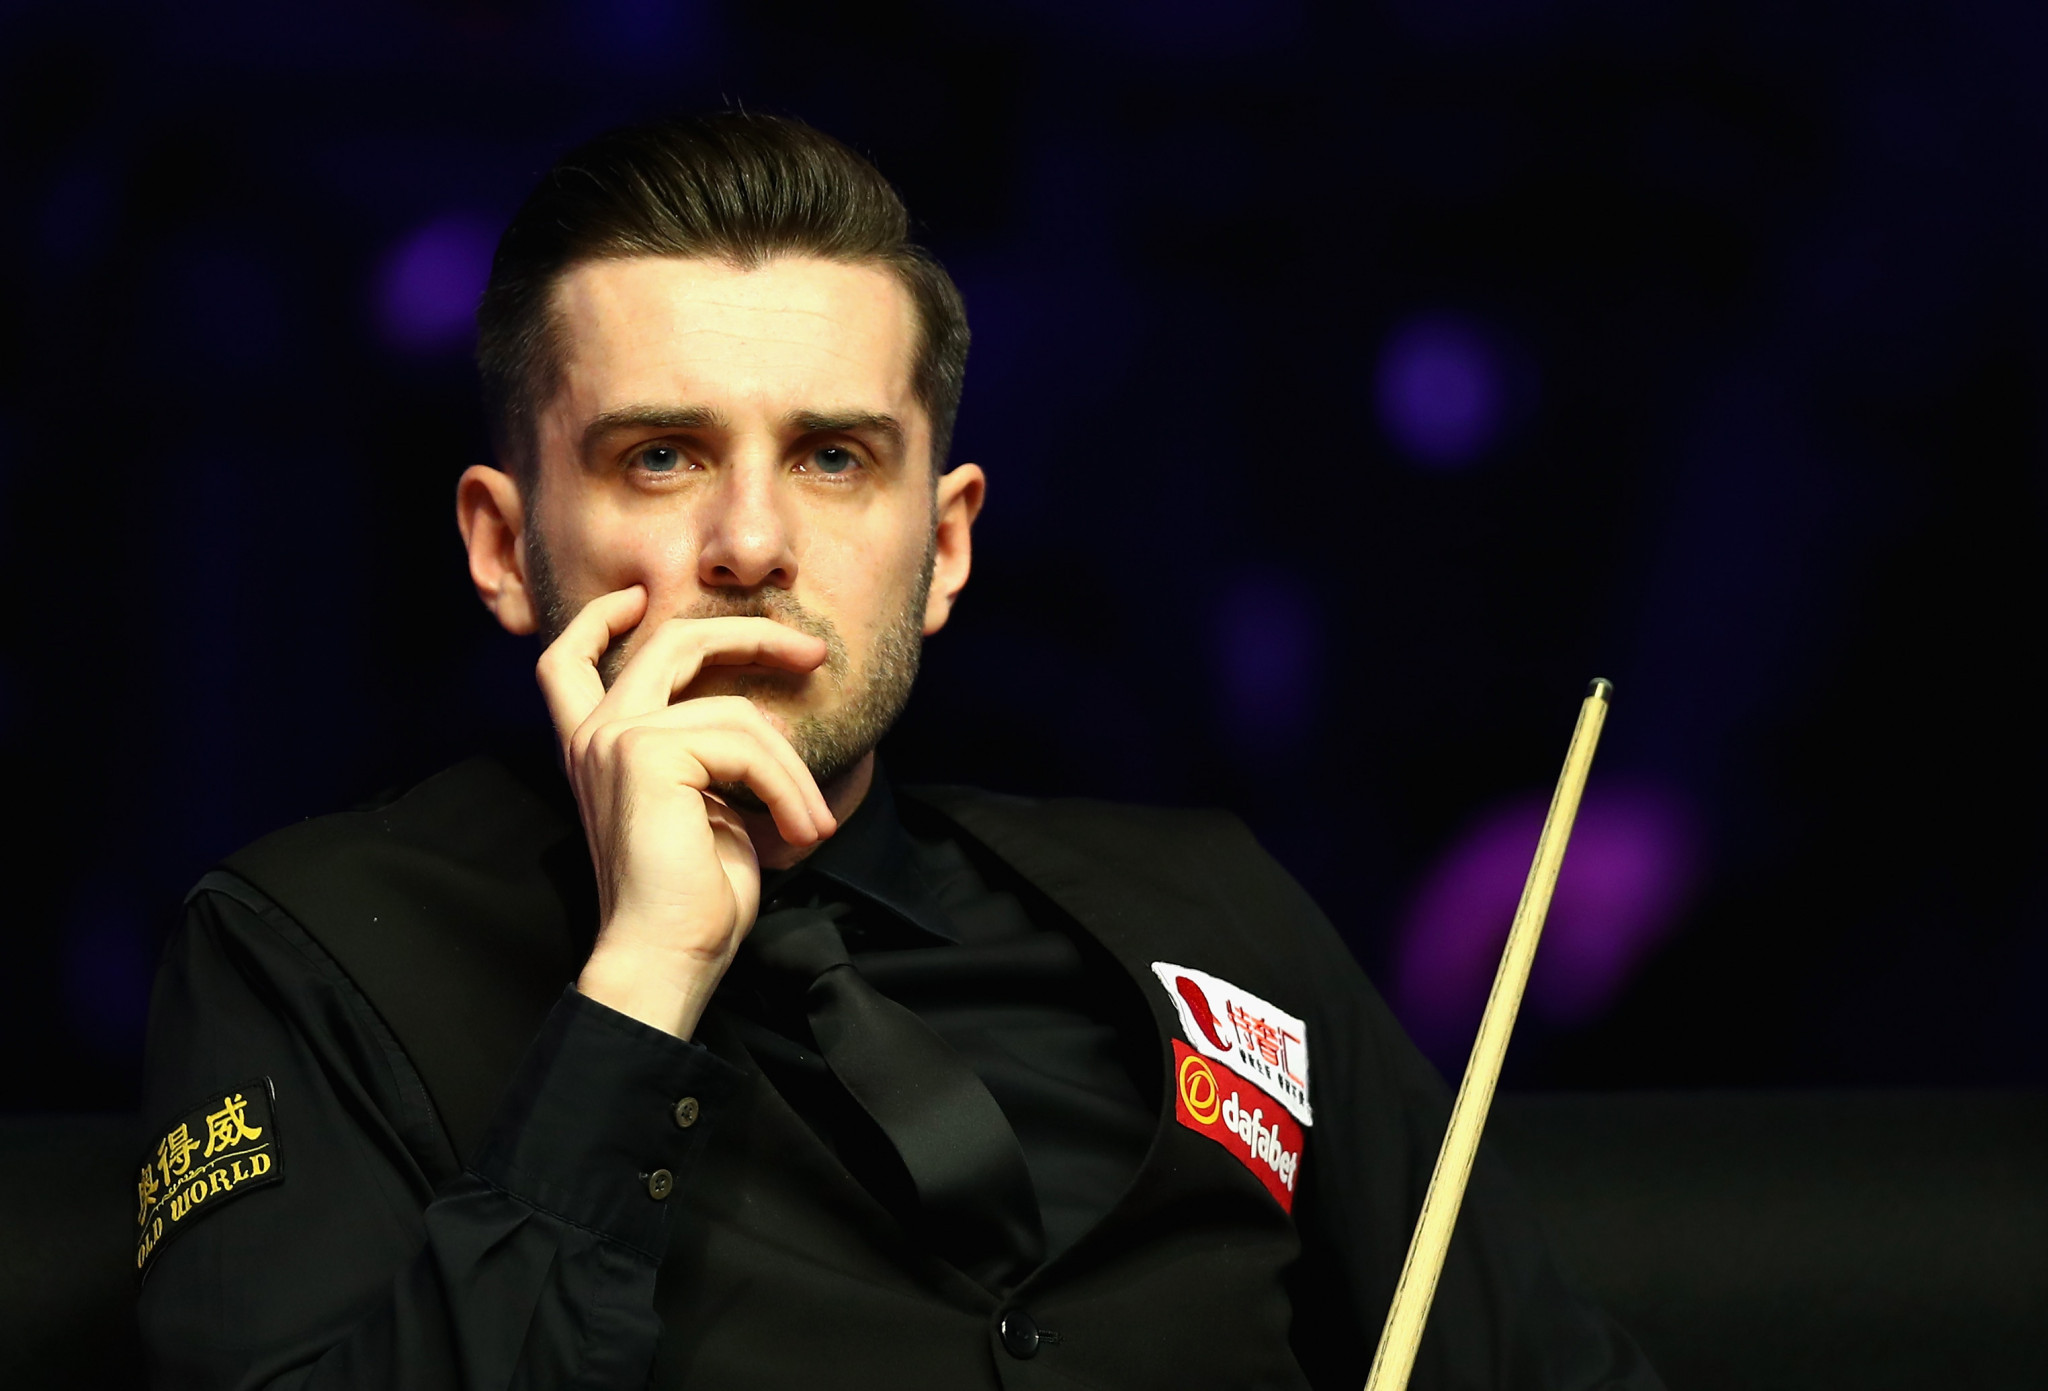 Line-up confirmed for World Snooker Championship in Sheffield